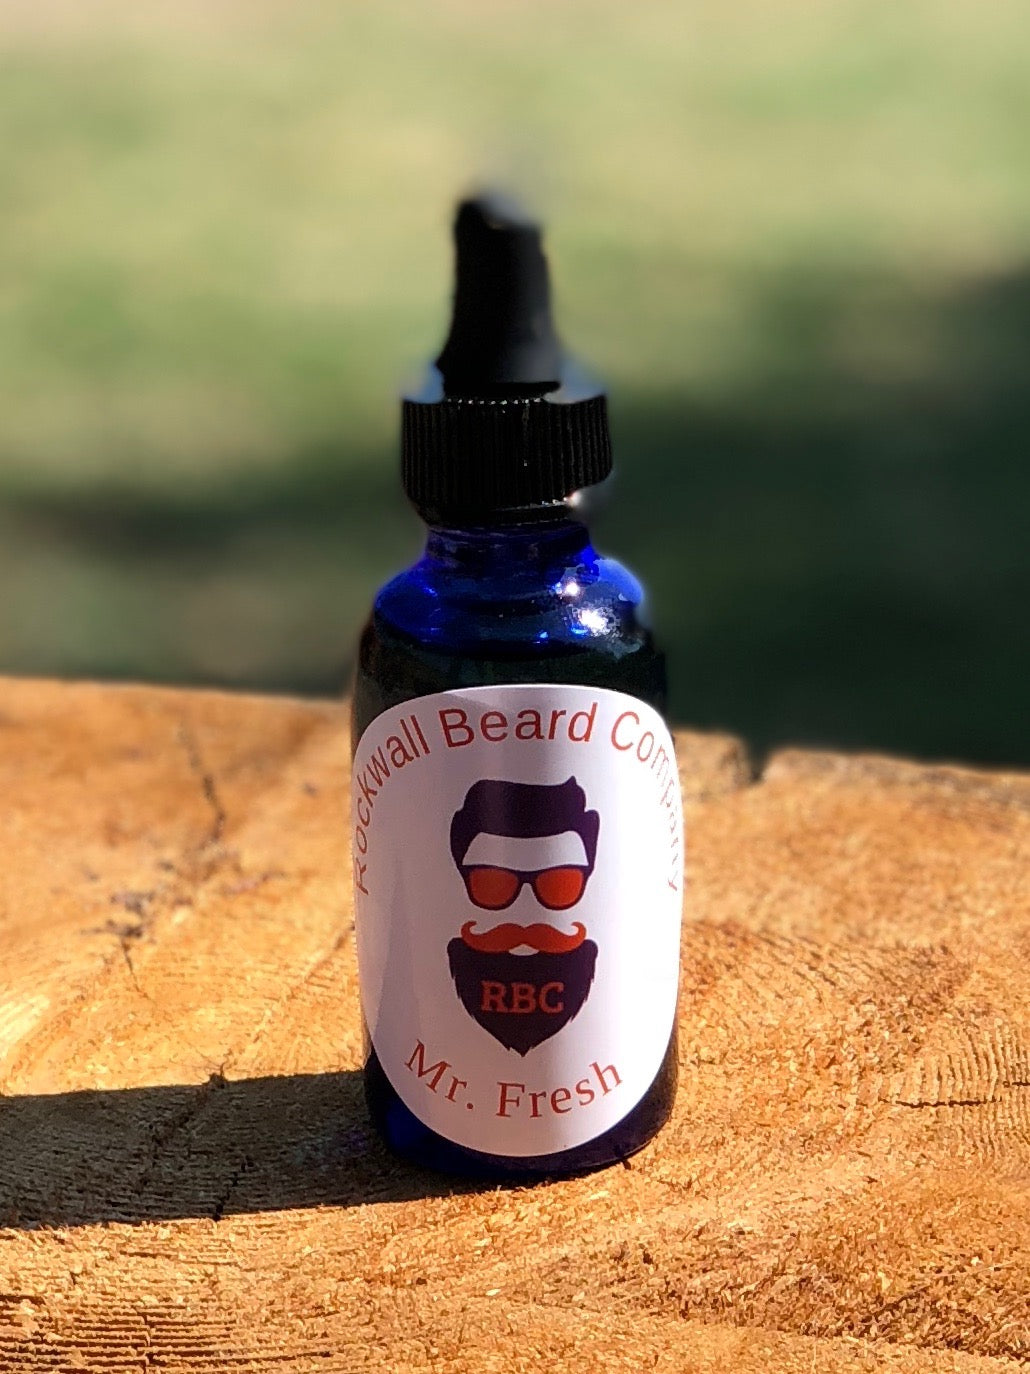 Mr. Fresh Beard Oil